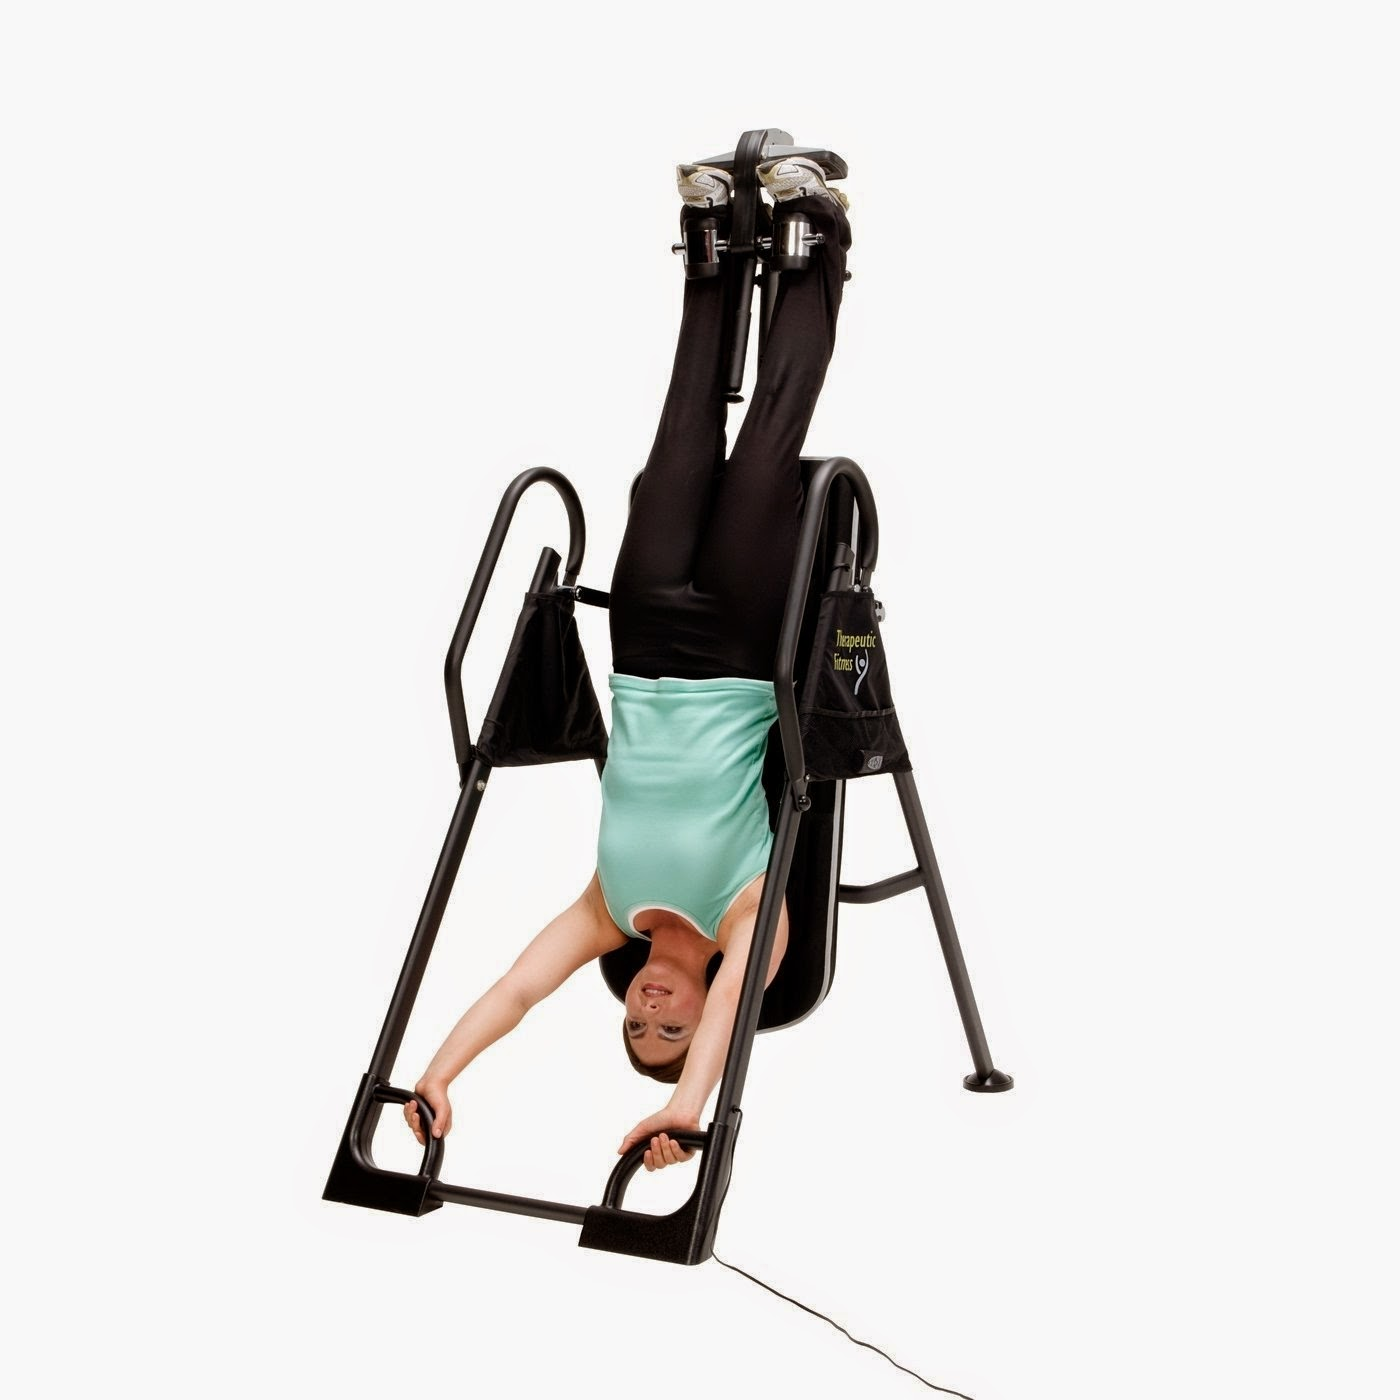 Inverting to a full 180 degrees on an inversion table